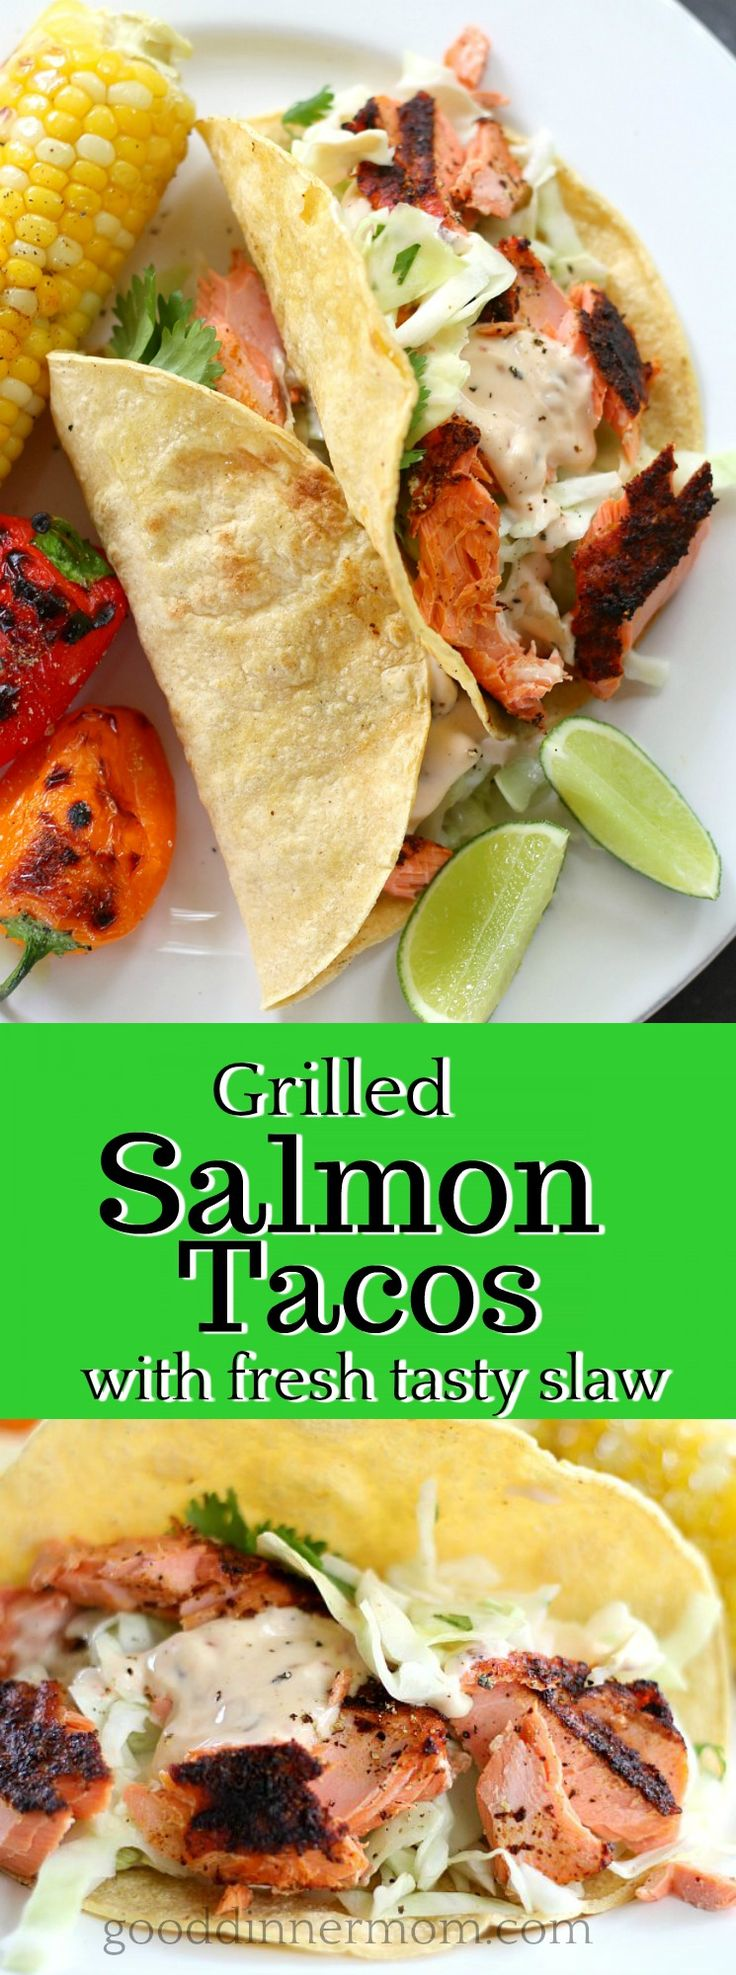 Fresh, blackened salmon, grilled to perfection and finished with a fresh, tangy cole slaw for the perfect grilled fish taco.